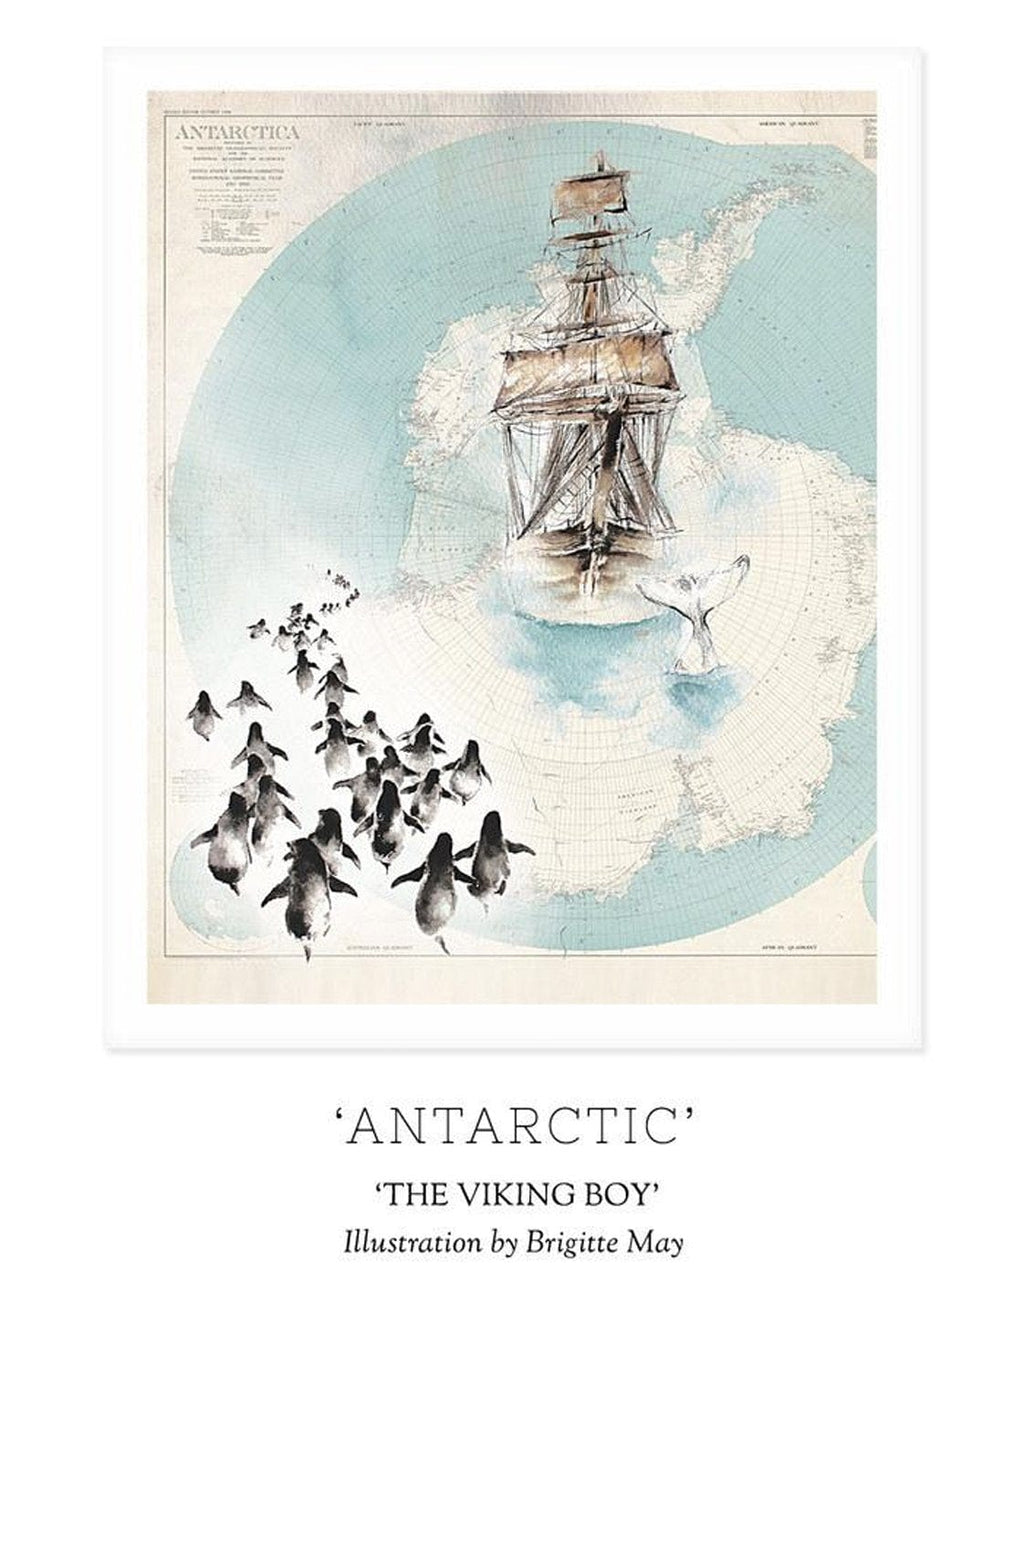 THE VIKING BOY - 'ANTARCTIC' Print